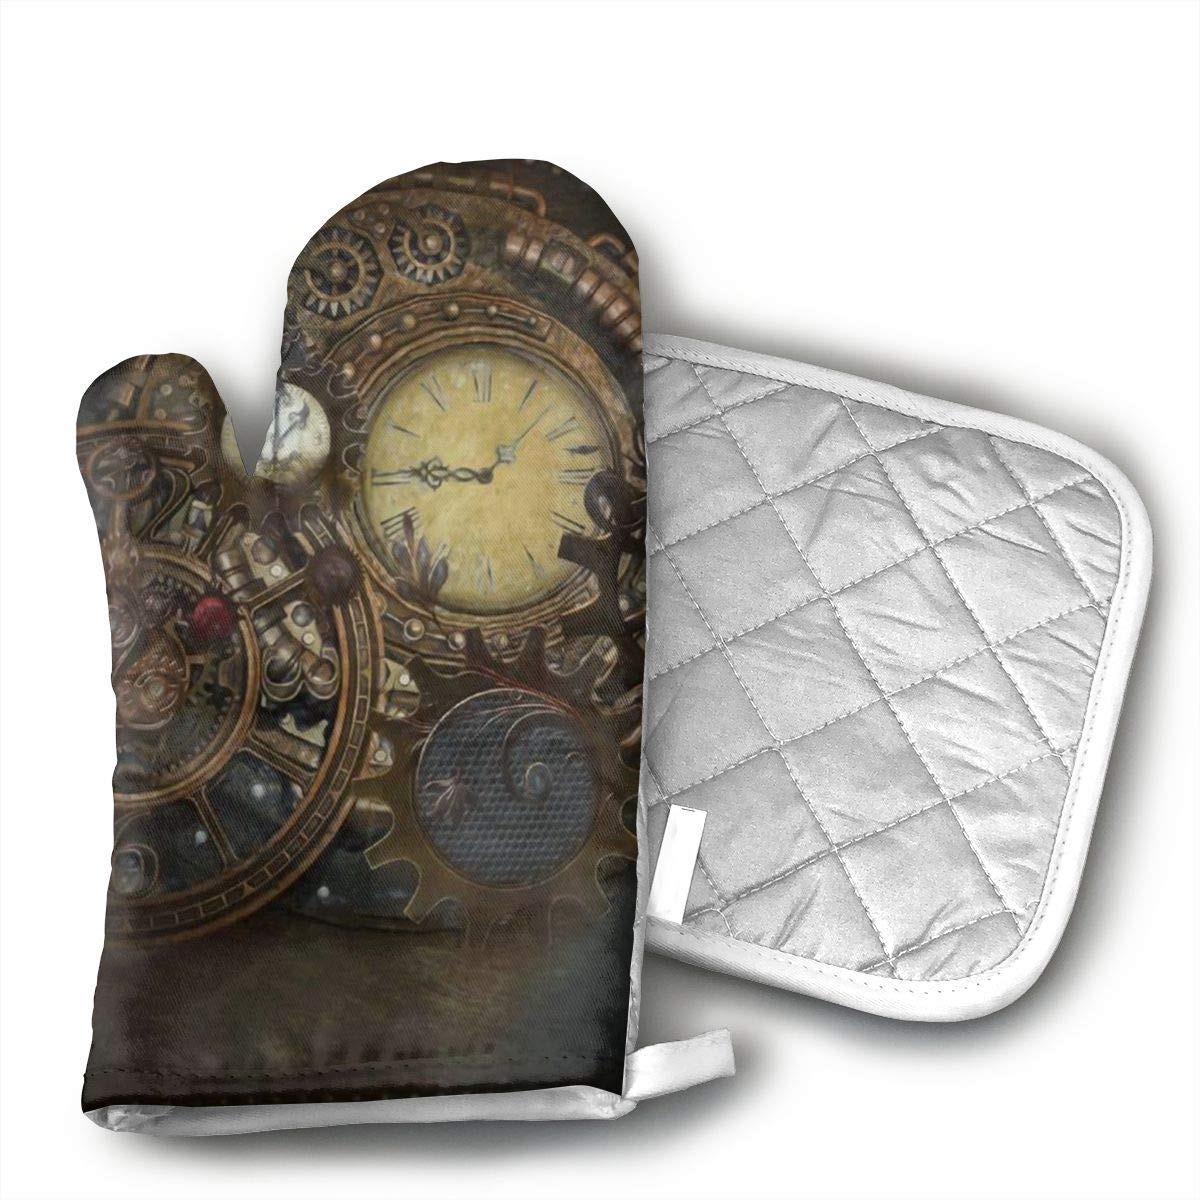 GRSTsys Steampunk Clocks Oven Mitts and Potholders Kitchen Counter Safe Mats and Advanced Heat Resistant Oven Mitt, Non-Slip